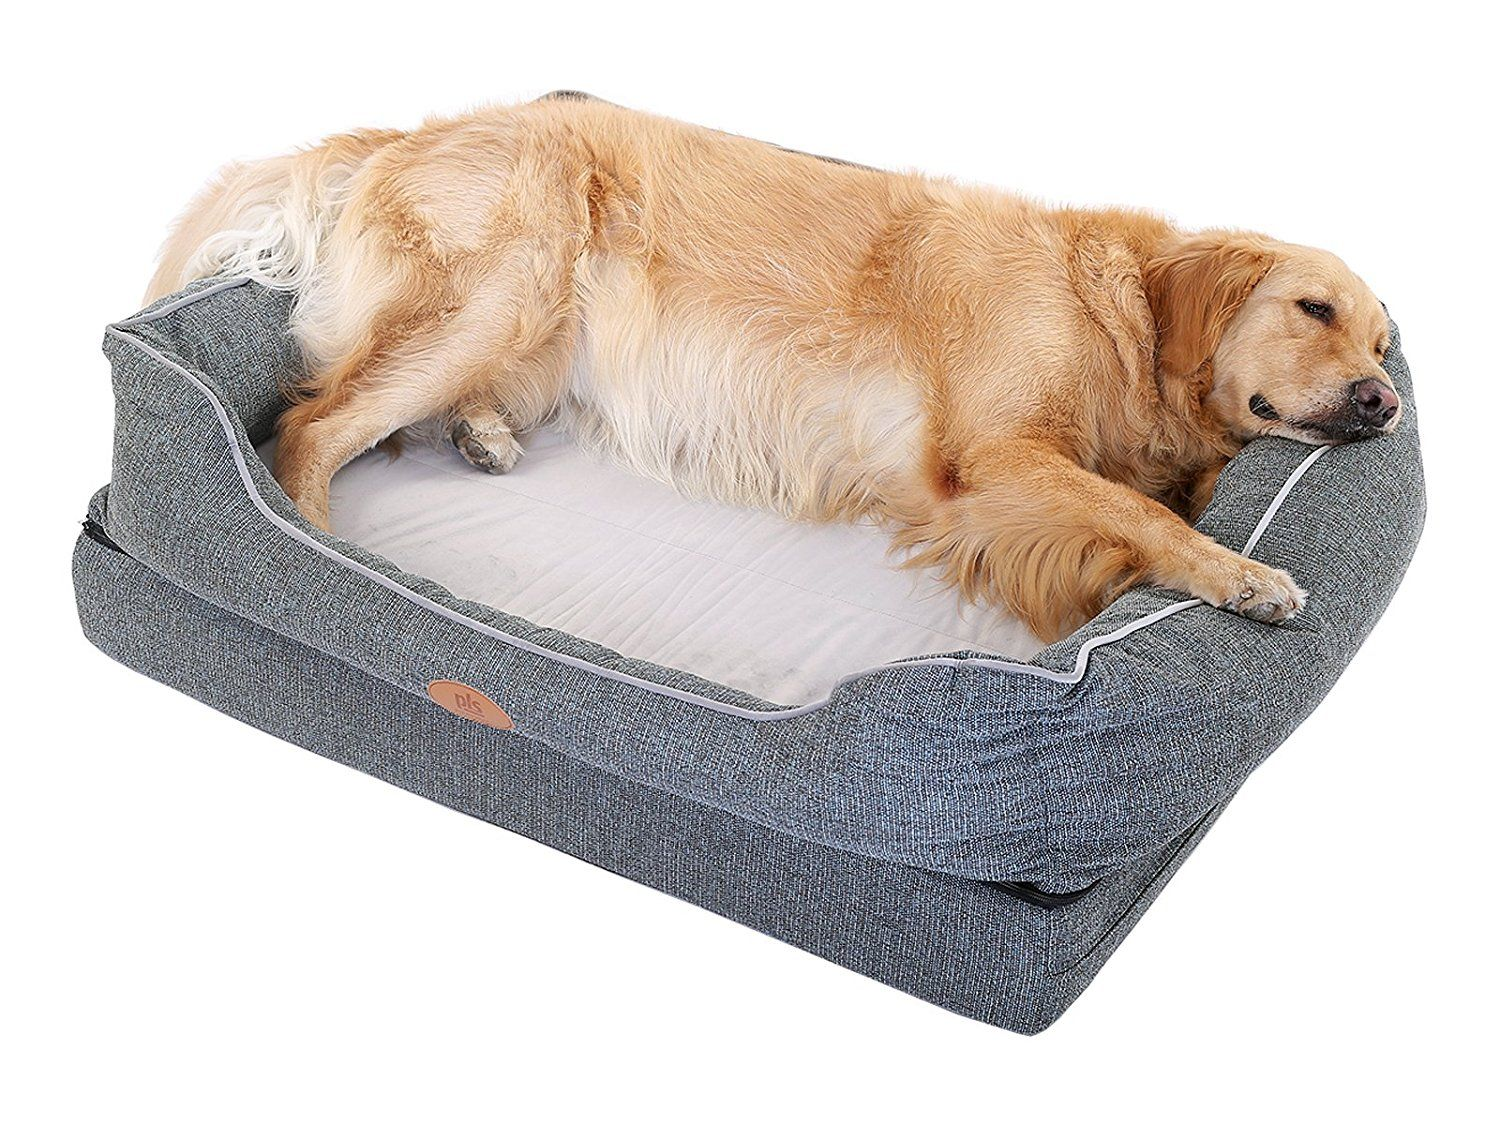 New Pls Birdsong Fusion Orthopedic Dog Bed With Plush Bolster Sides Firm Foam Dog Bed Dog Beds For Large Dogs With Rem Cool Dog Beds Orthopedic Dog Dog Bed